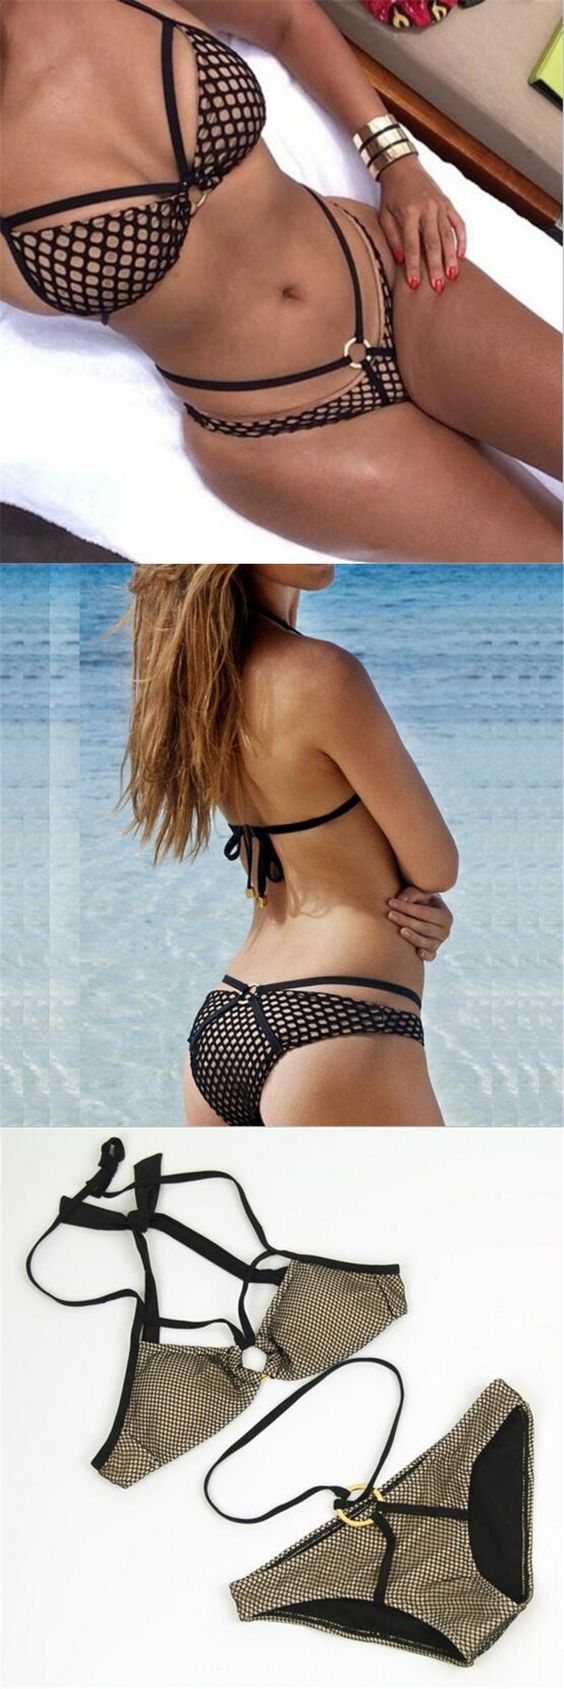 Brazilian Bikini Swimwear 2016 Brand Sexy Swimsuit Summer Women Bathing Suit Maillot De Bain Hollow Out Ladies Beach Biquini $13.99